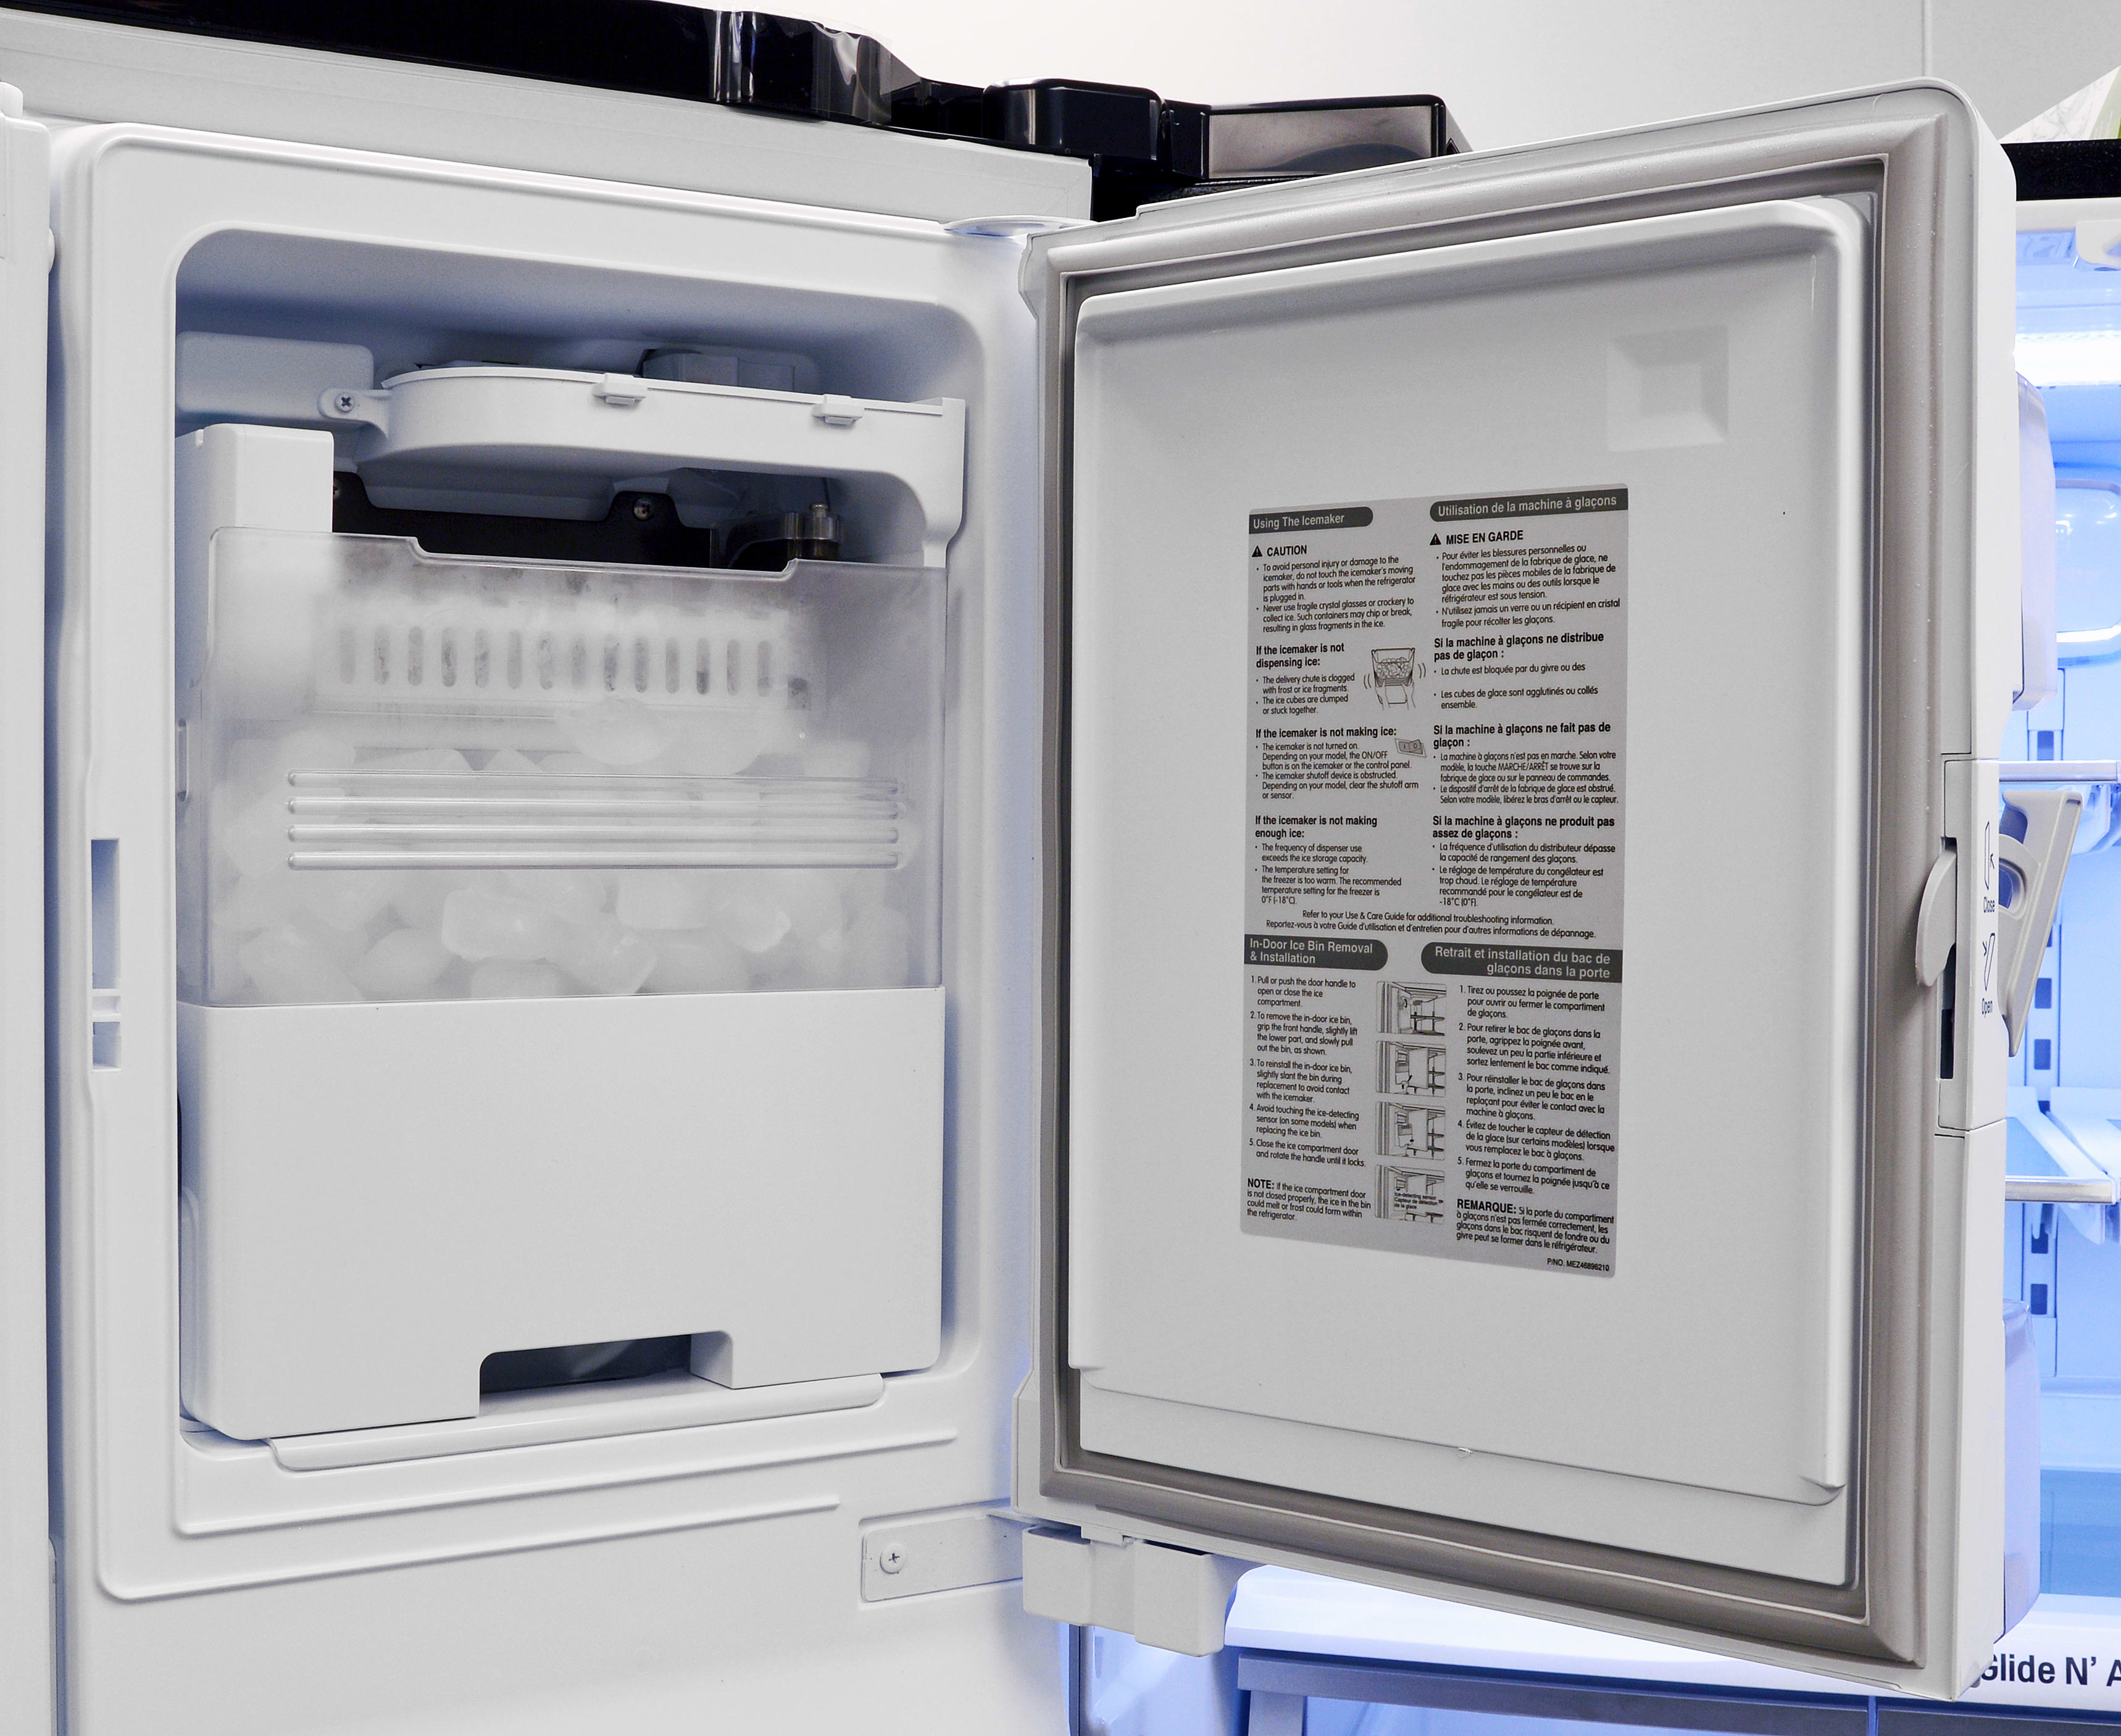 The slim ice maker is easy to get at if you need more ice than the dispenser can handle.